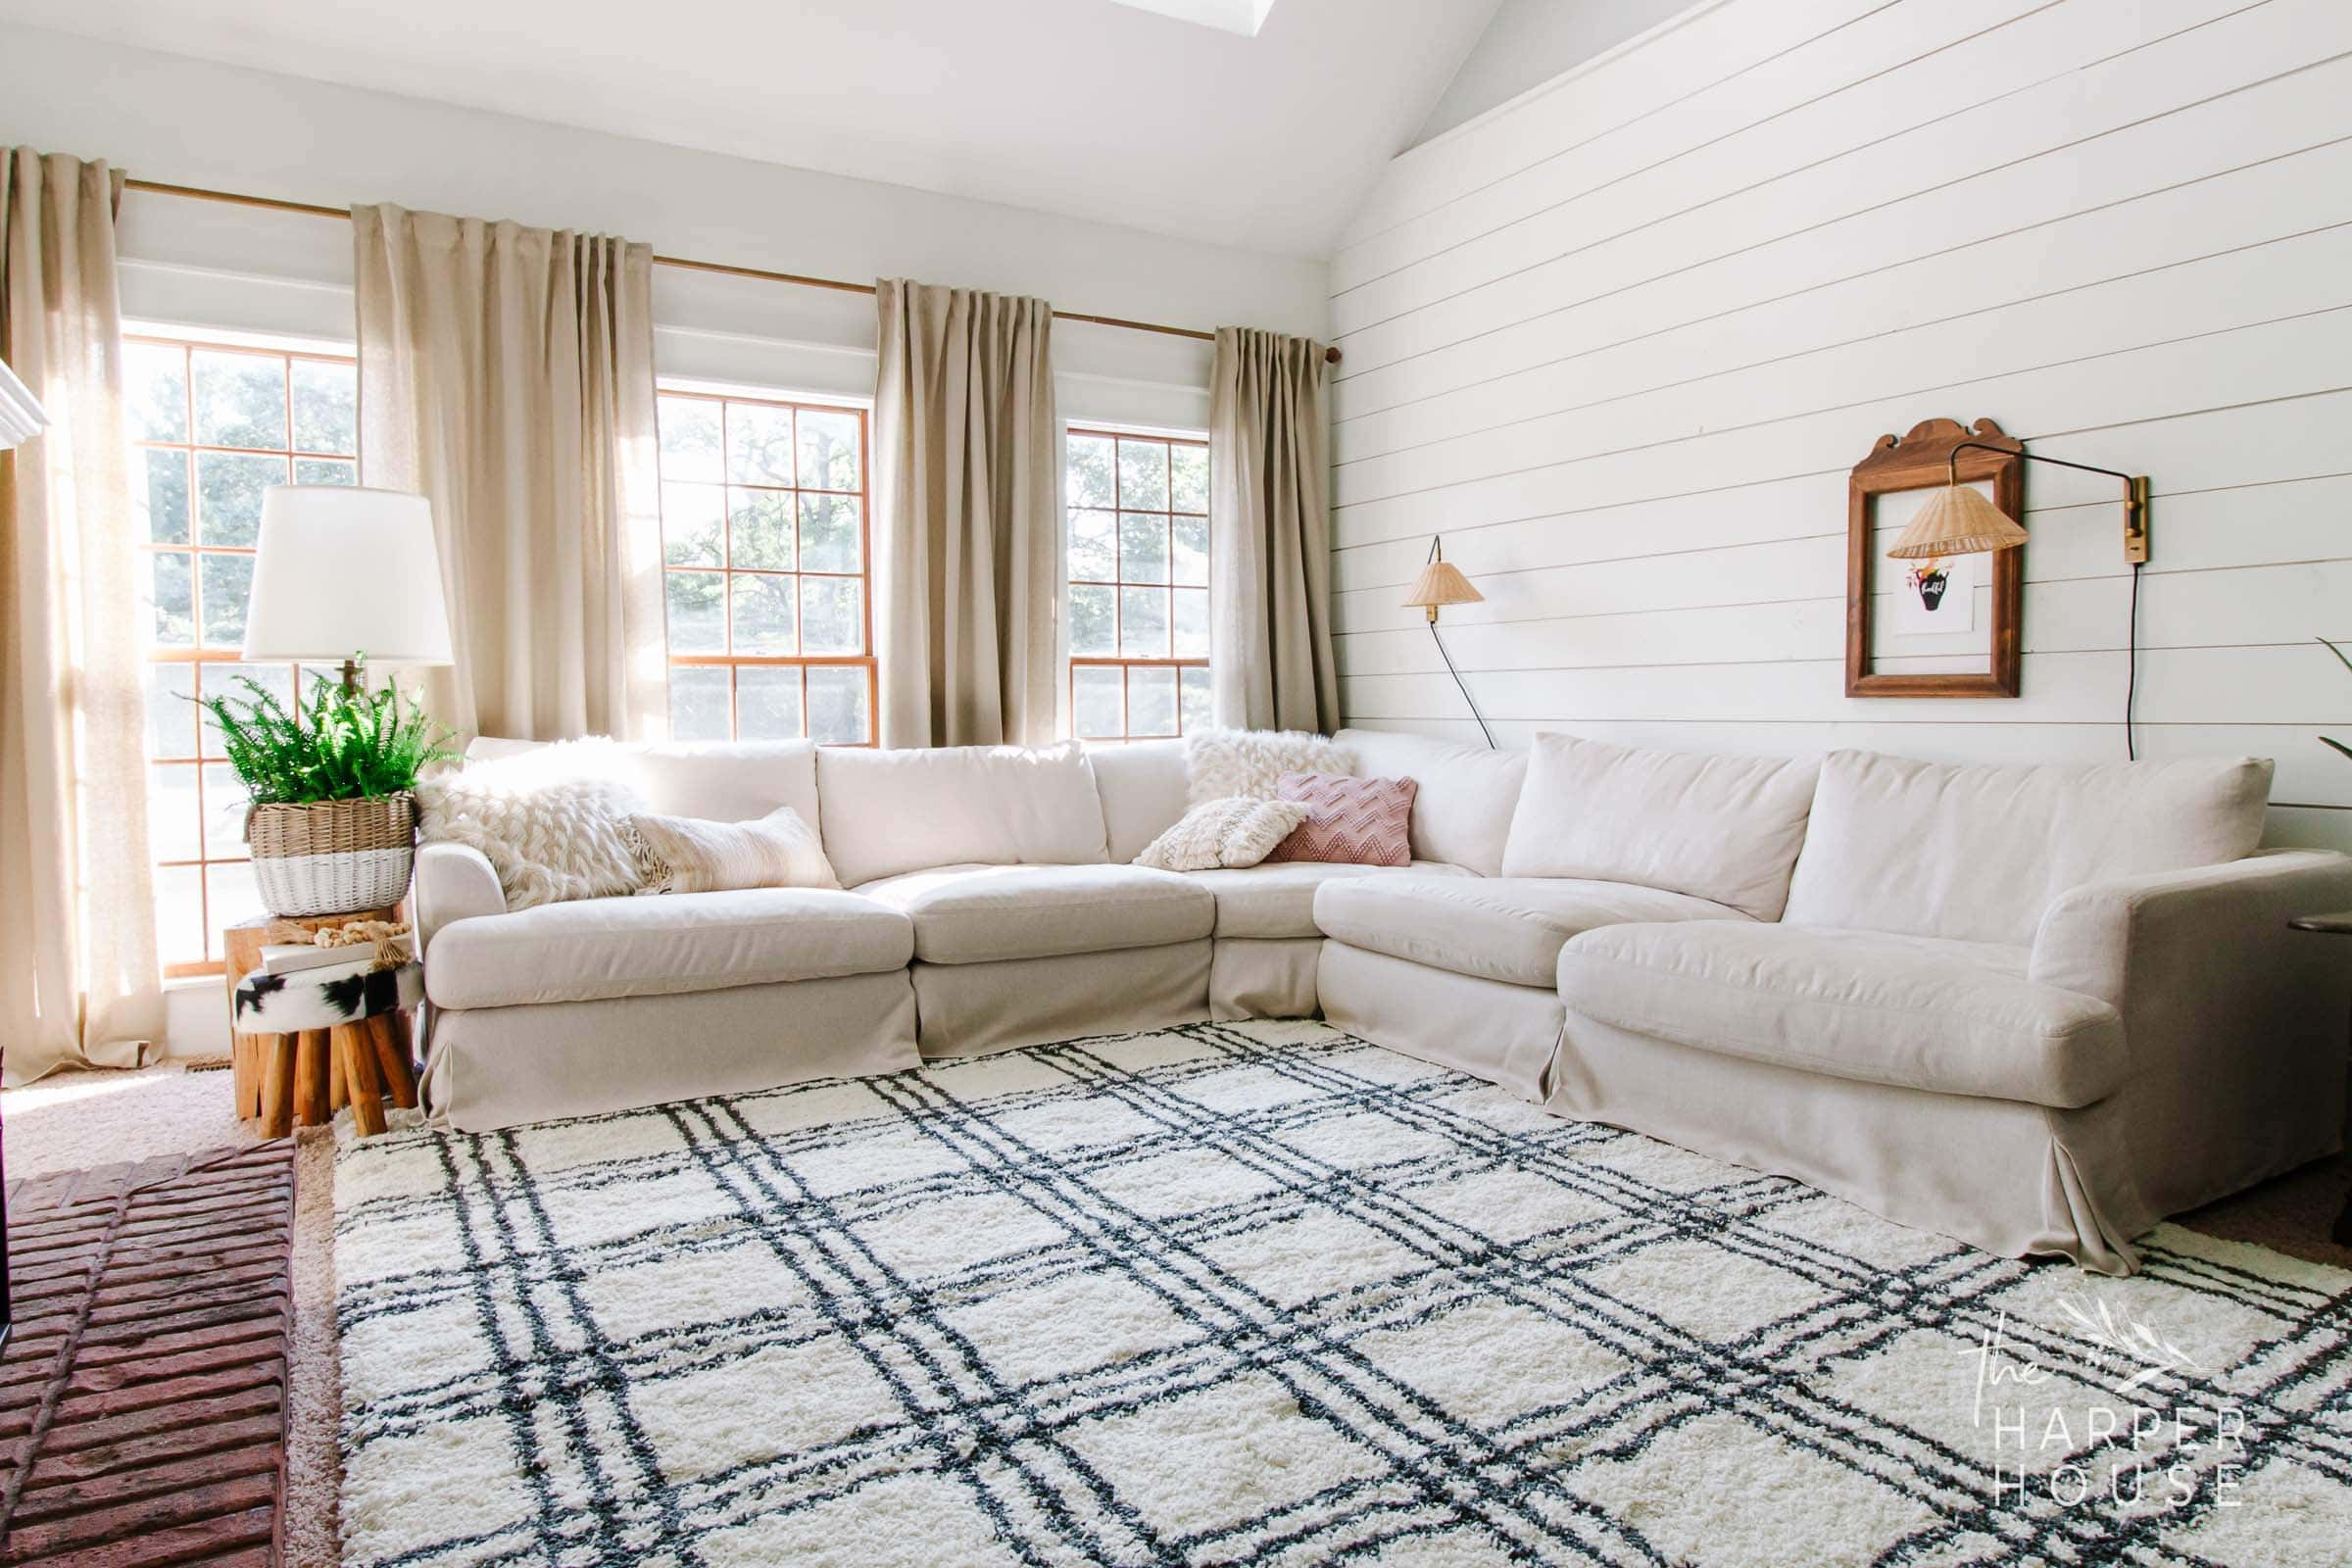 black and white rug in living room